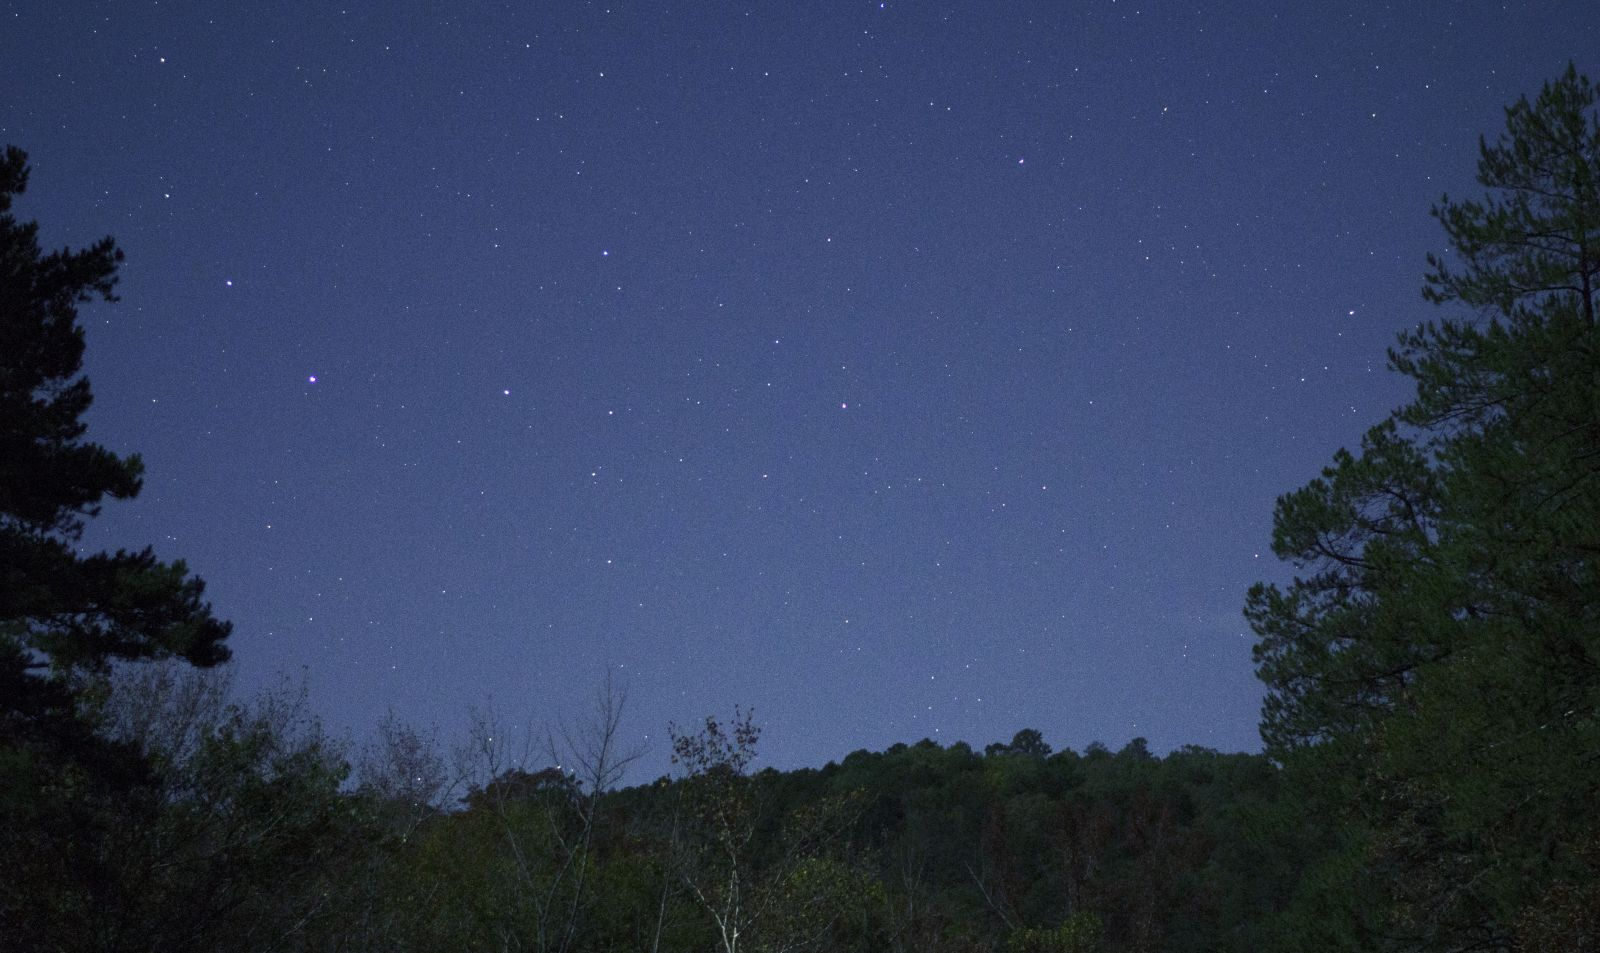 First shot Of The night Sky